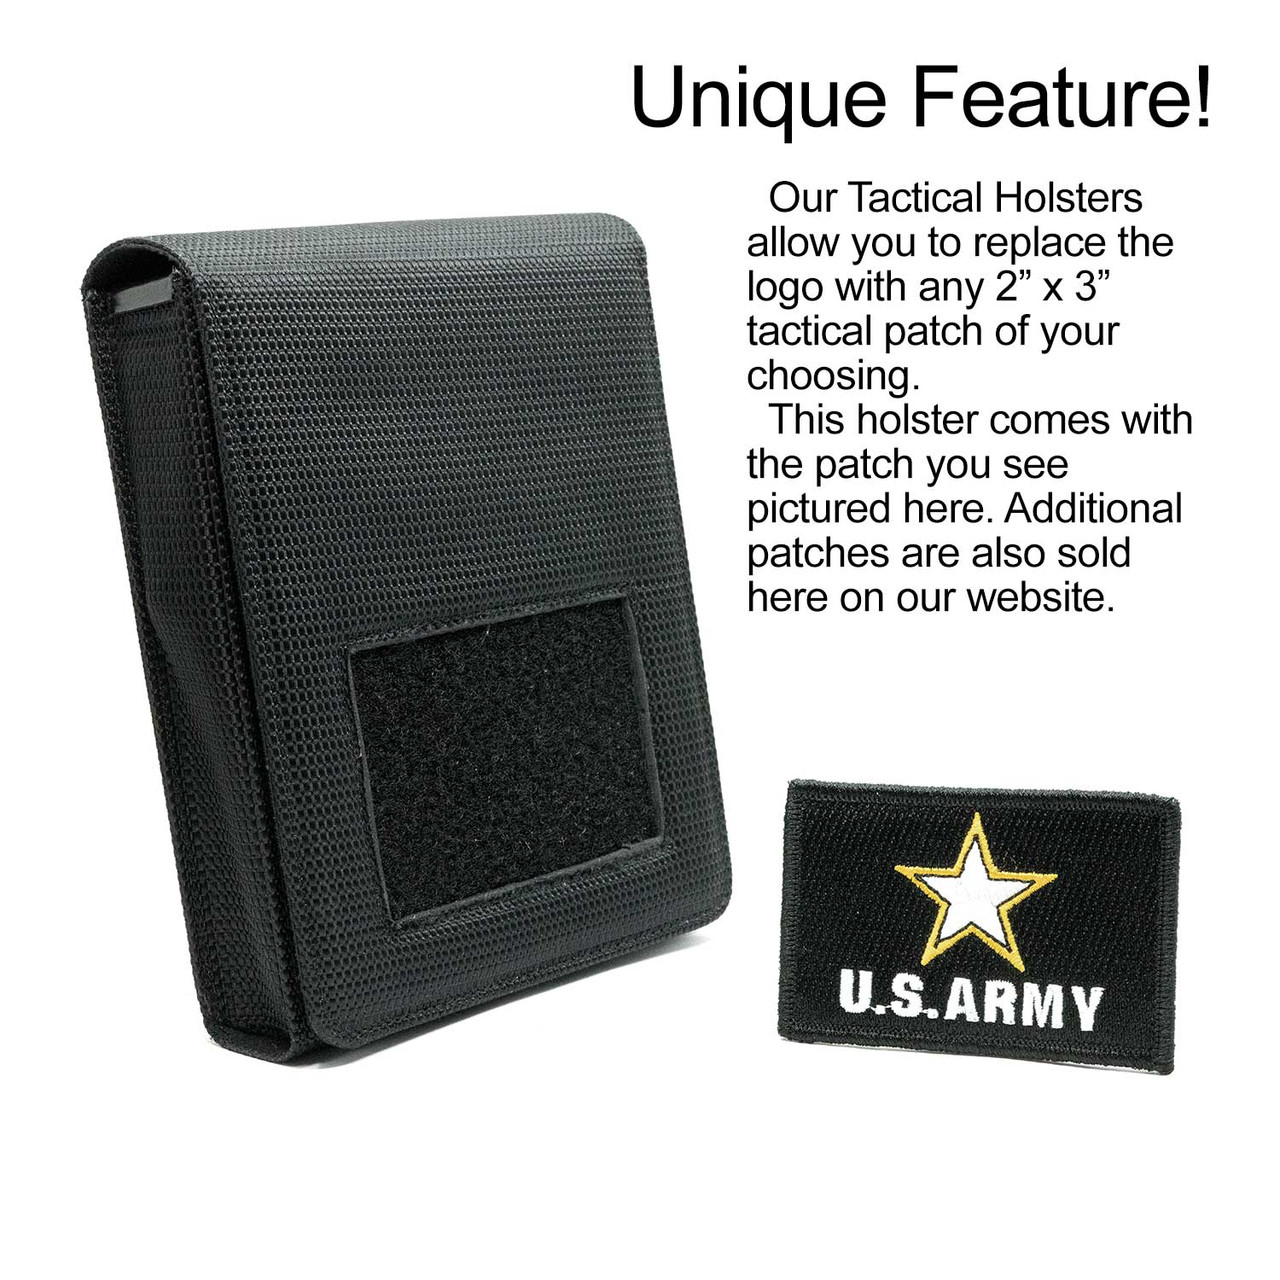 Colt Lightweight Defender Army Tactical Patch Holster